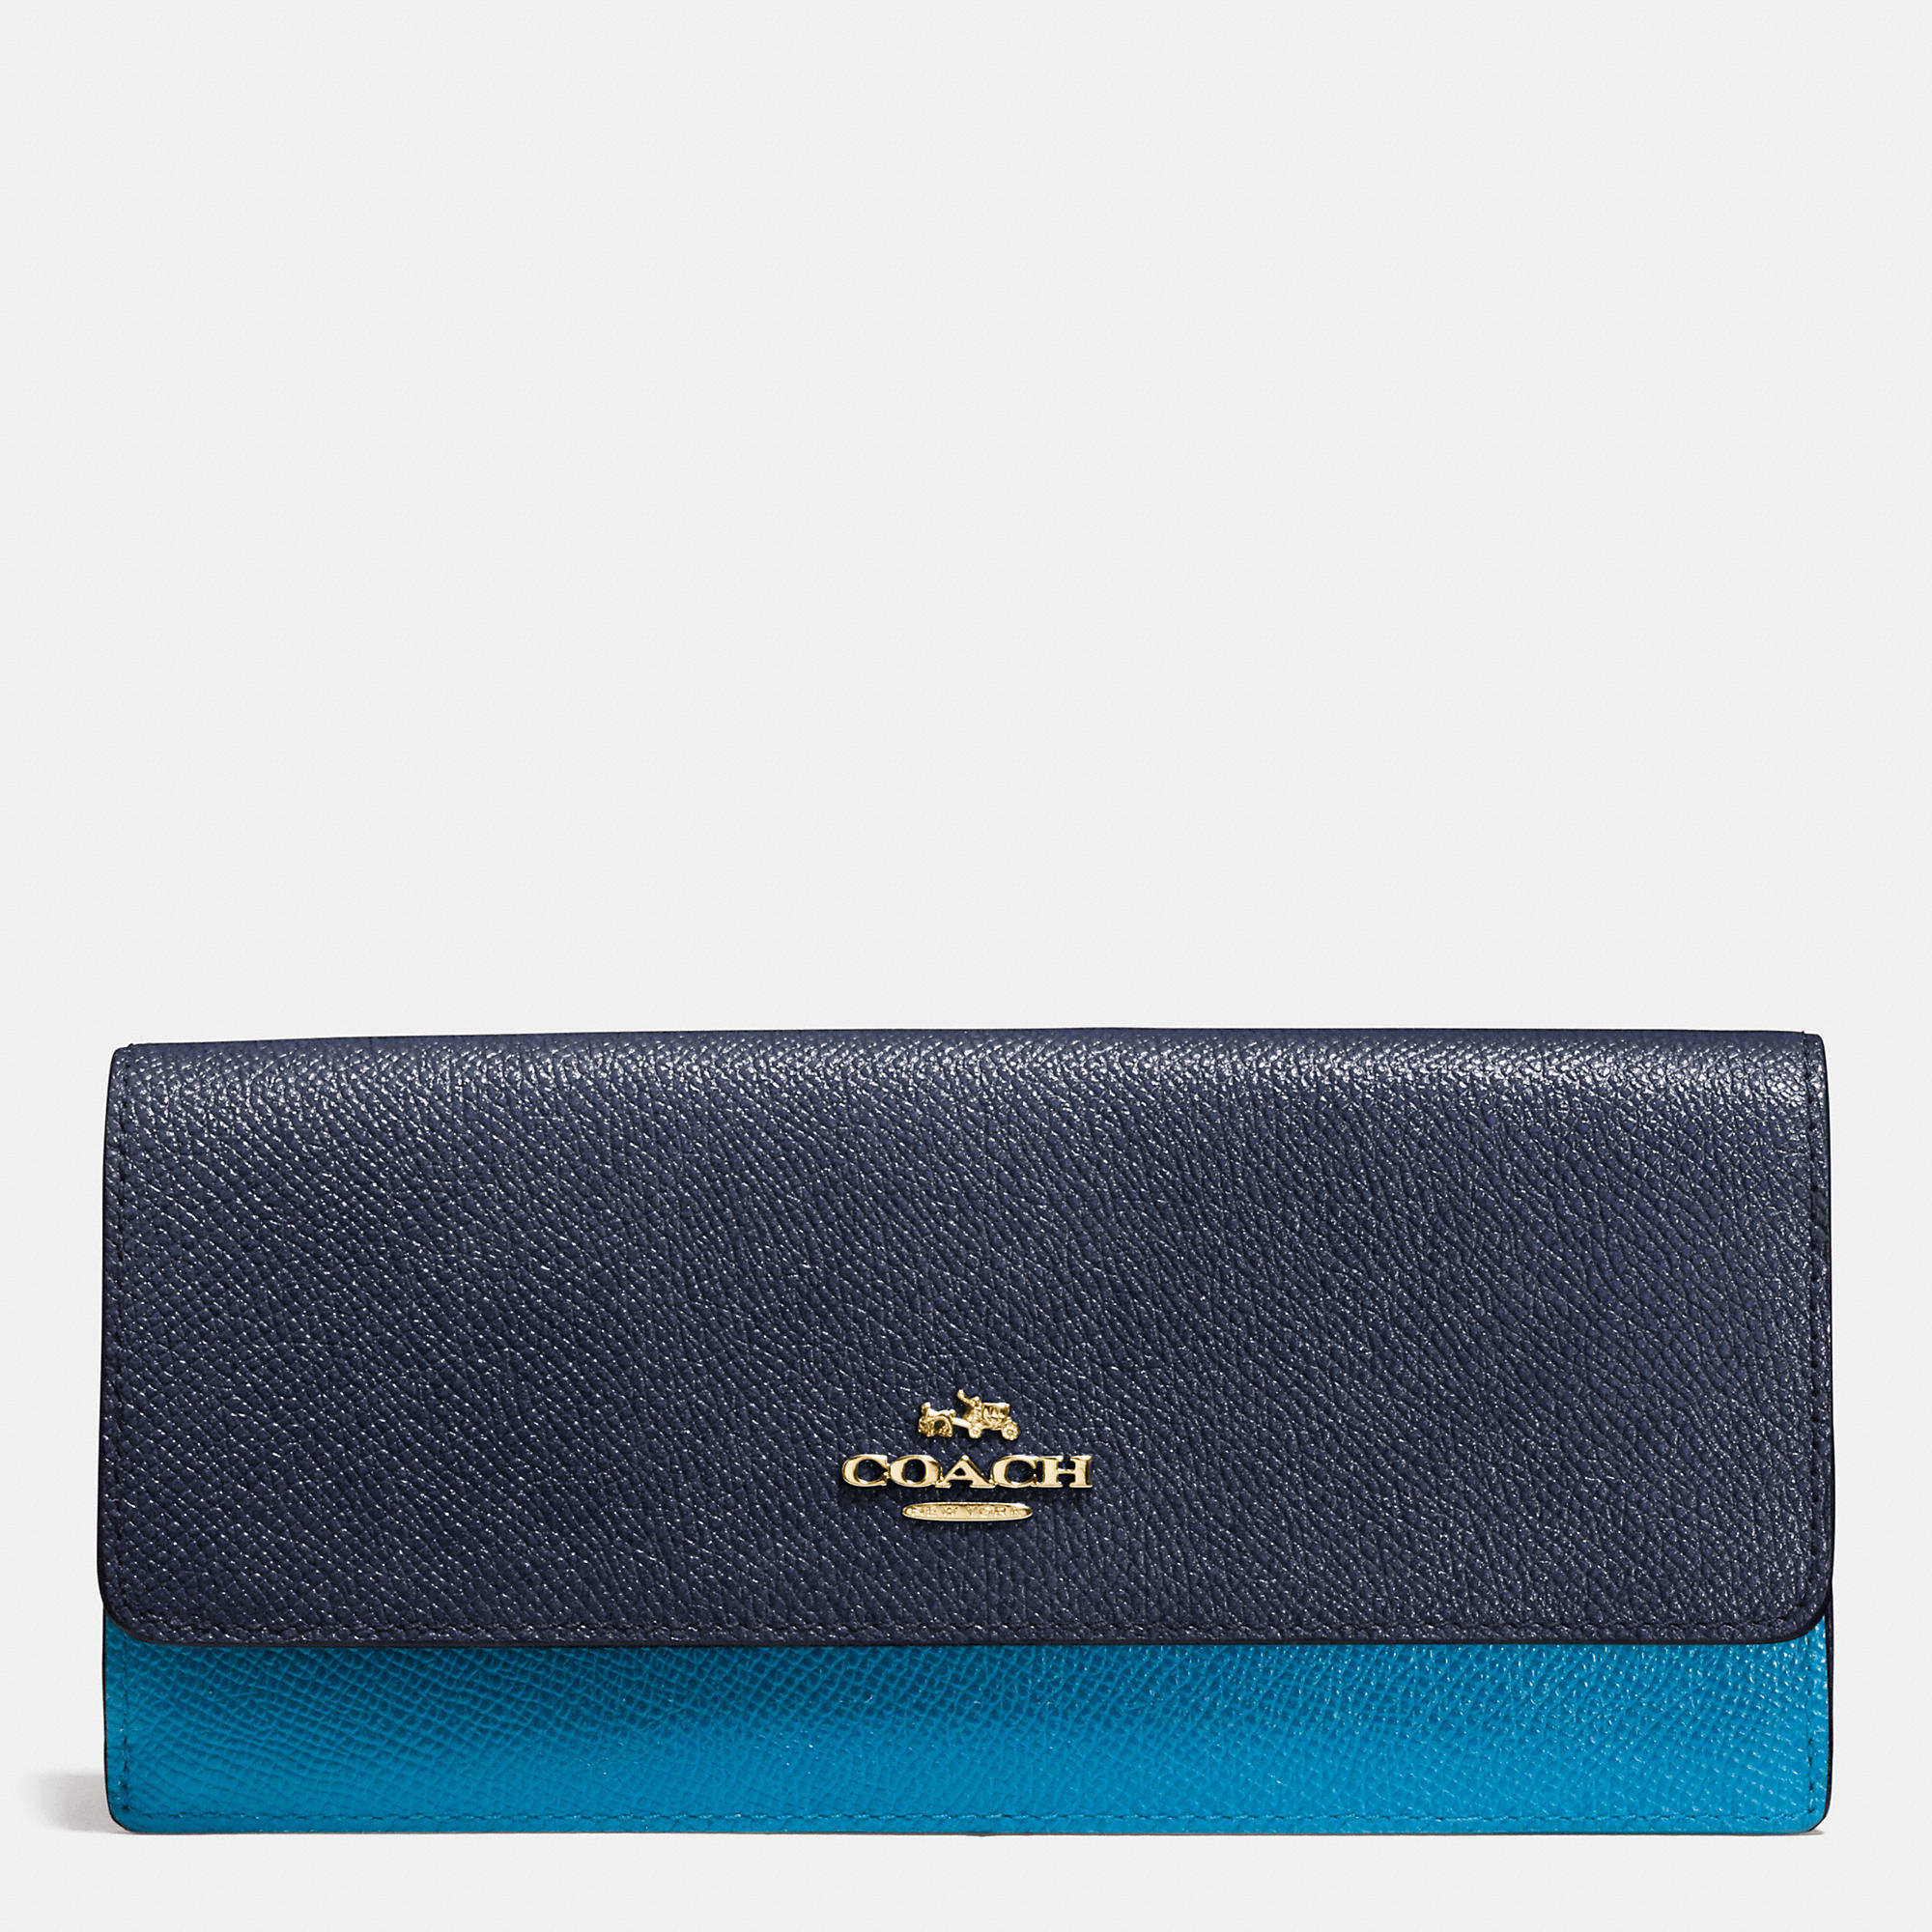 fc27e98b6c04 ... official lyst coach gift boxed soft wallet in colorblock leather in  blue 05403 00cc6